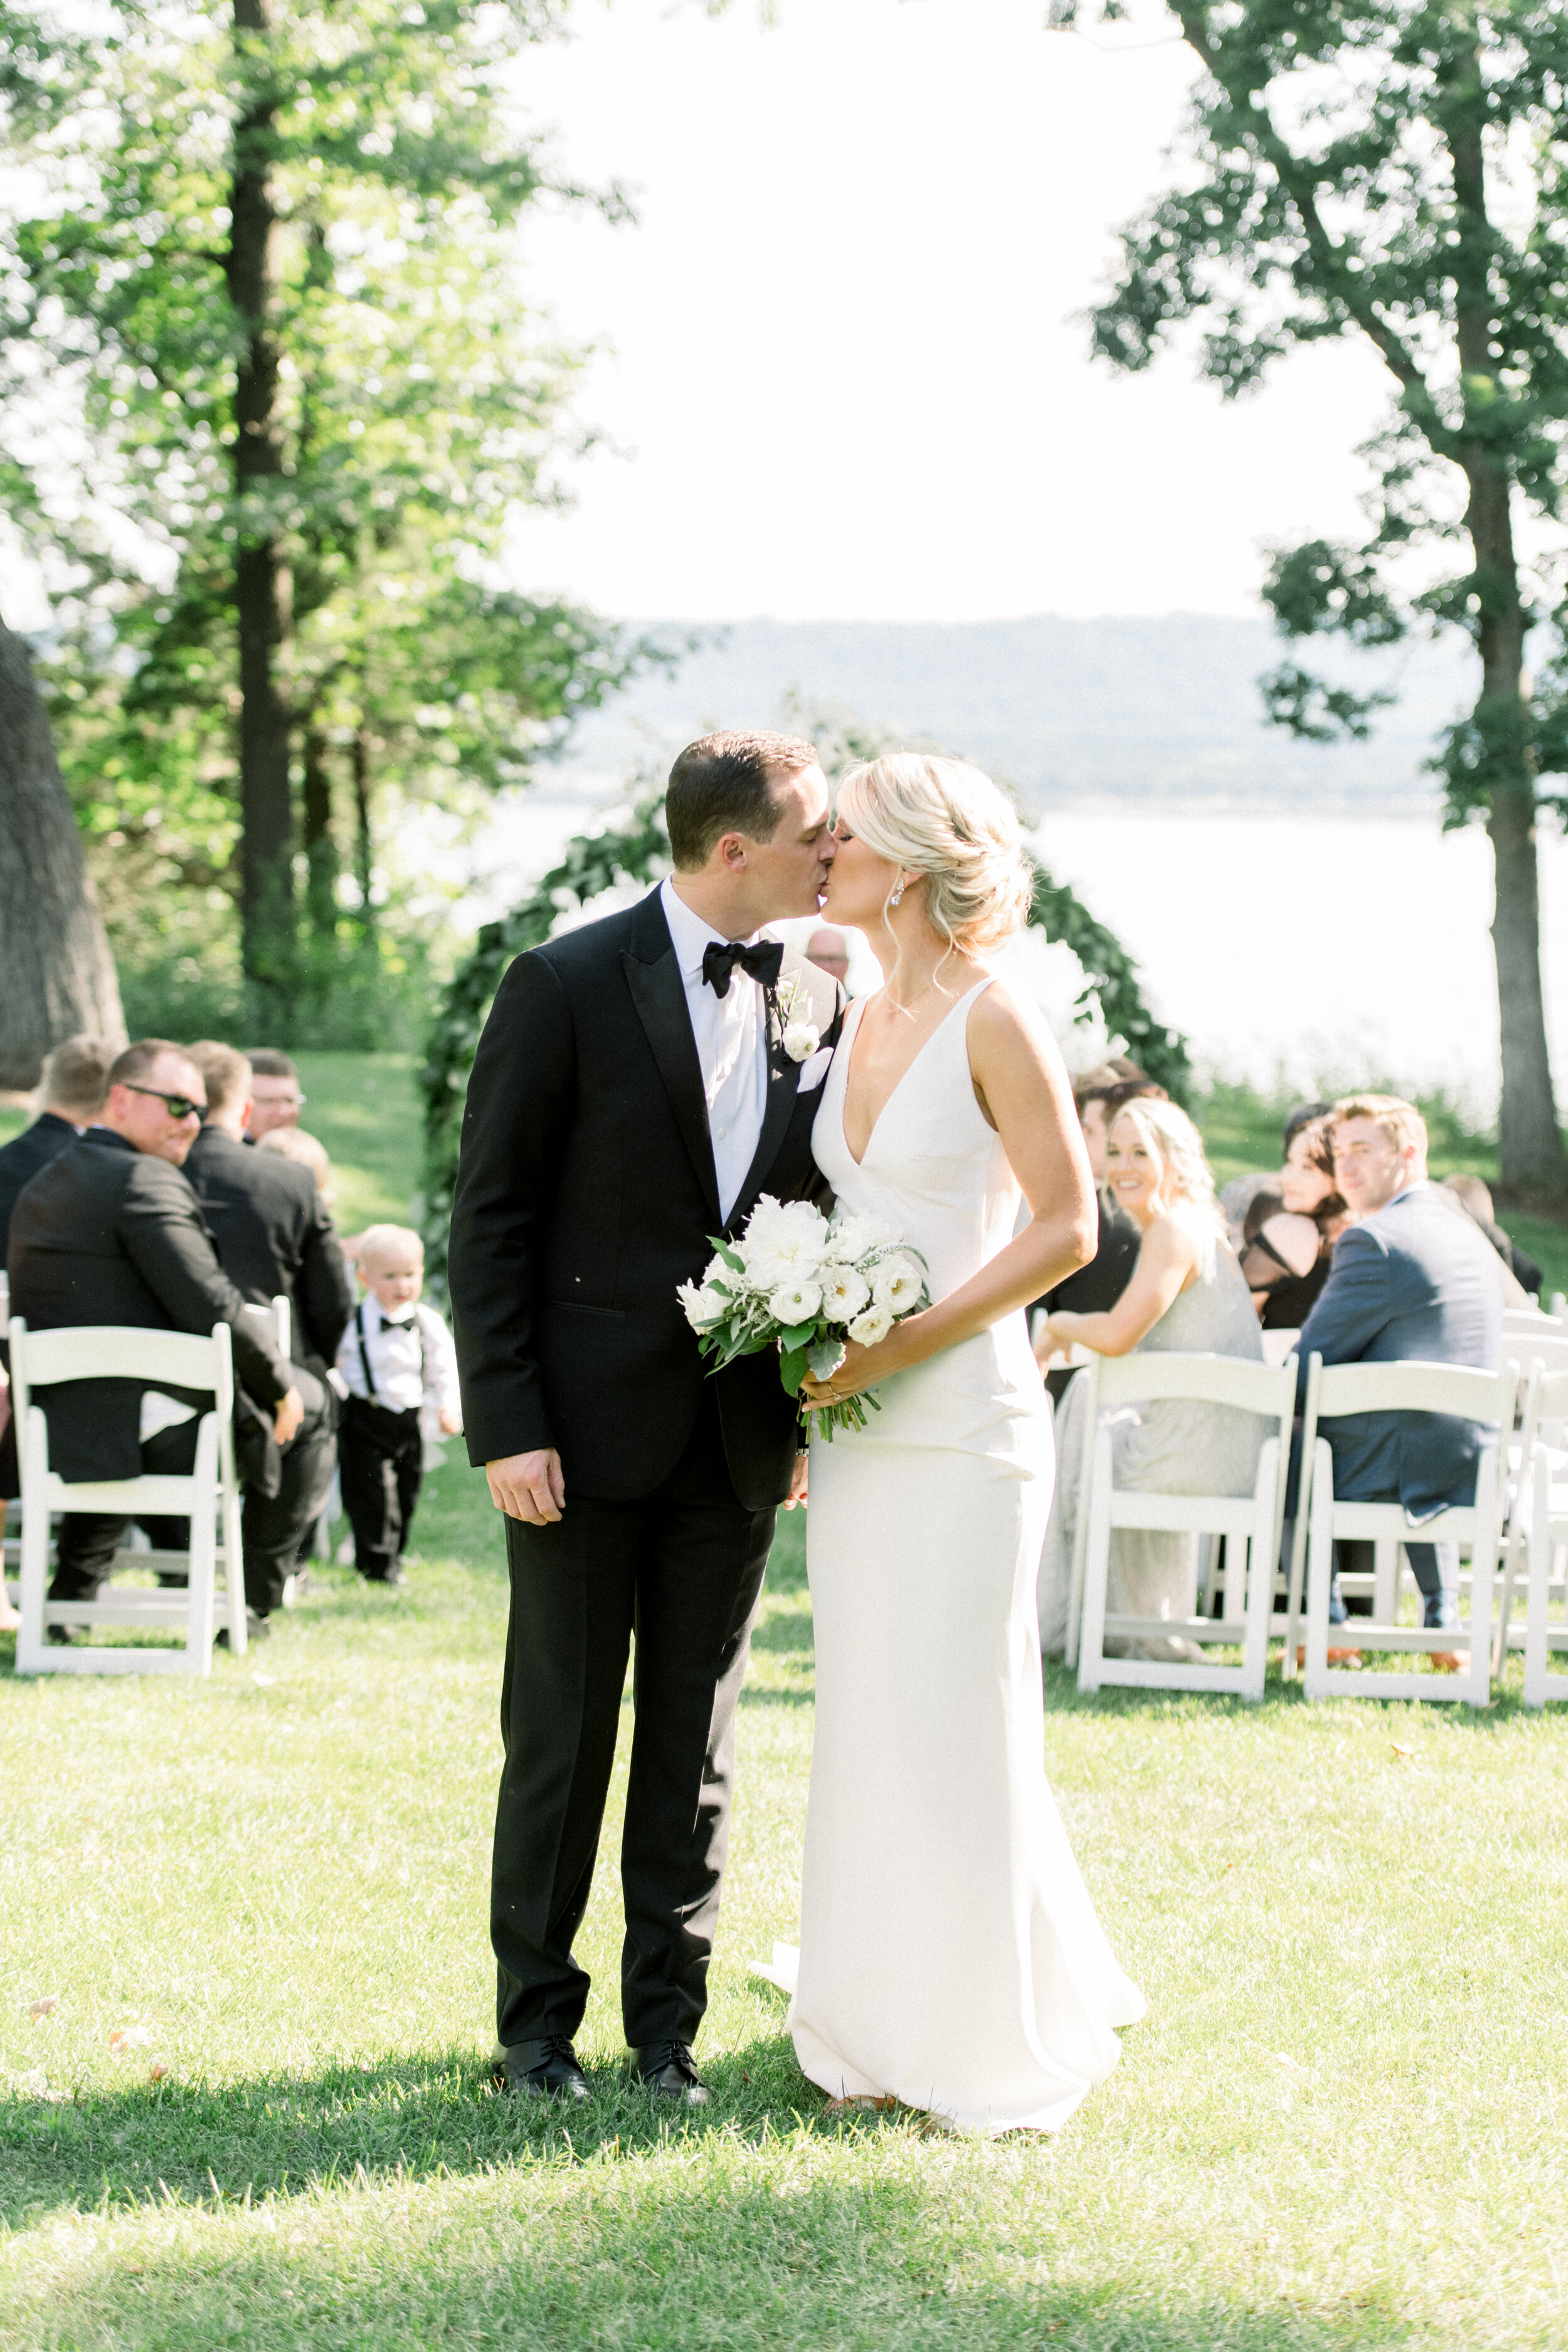 Romantic Backyard Wedding In Stockholm Wi Buck Rose Get inspired with our beautiful wedding stories or search for florists, venues, photographers, and other wedding. romantic backyard wedding in stockholm